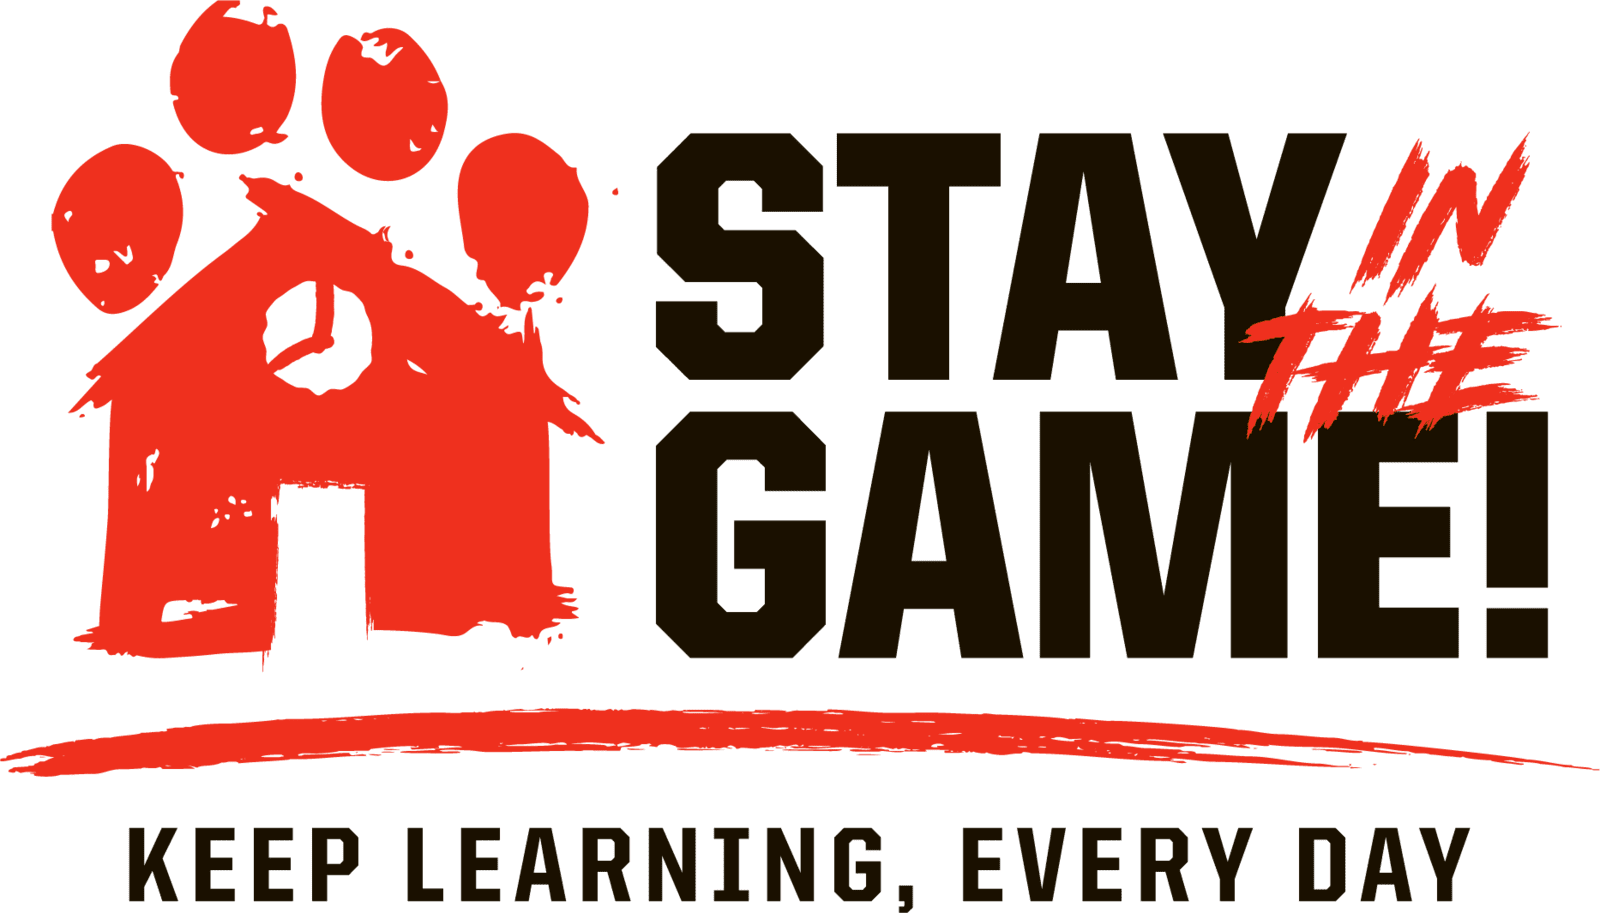 Stay in the Game! Keep learning, every day